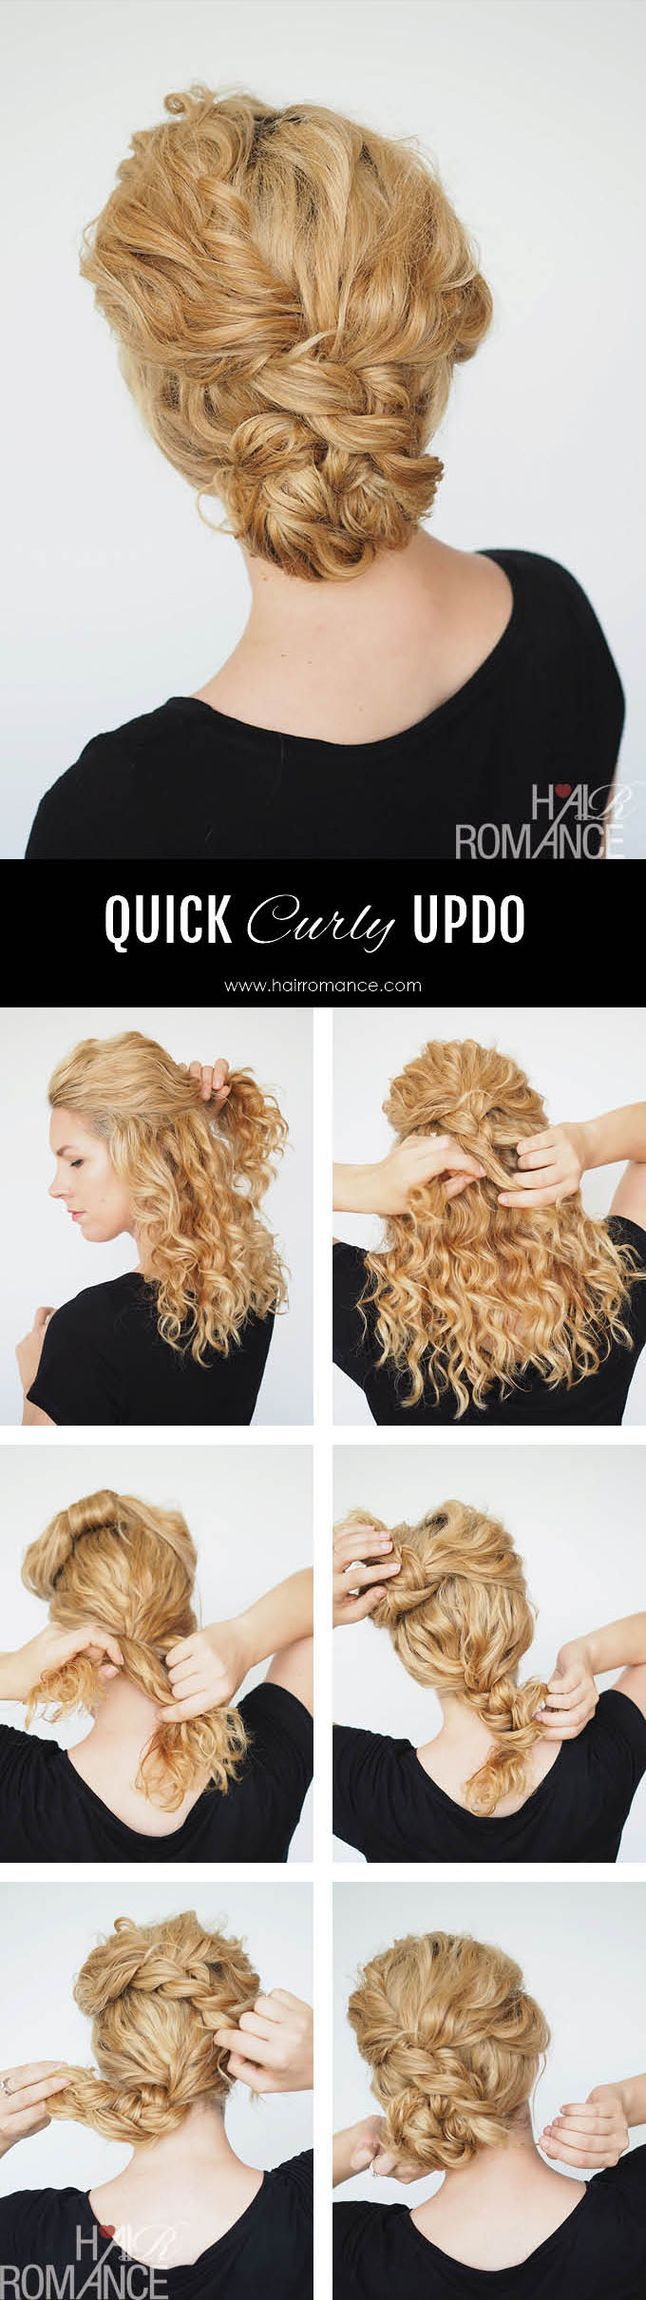 min updo for curly hair hair romance updo curly and hair style